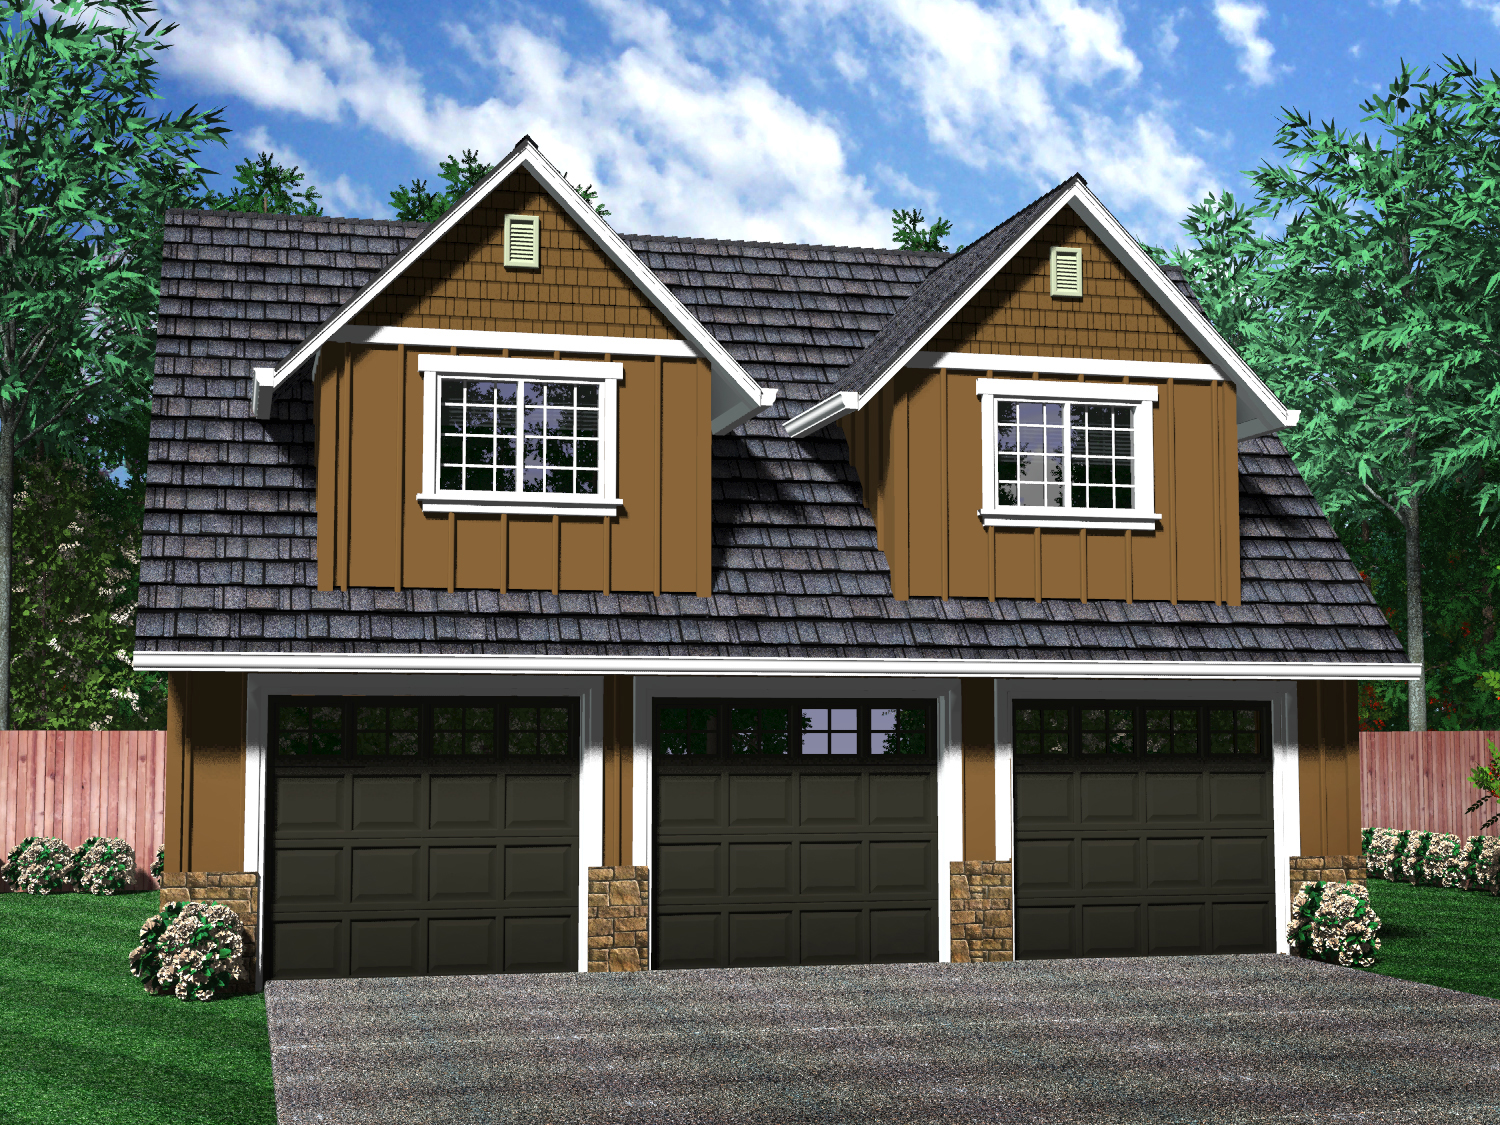 Detached garages Small house plans with 3 car garage